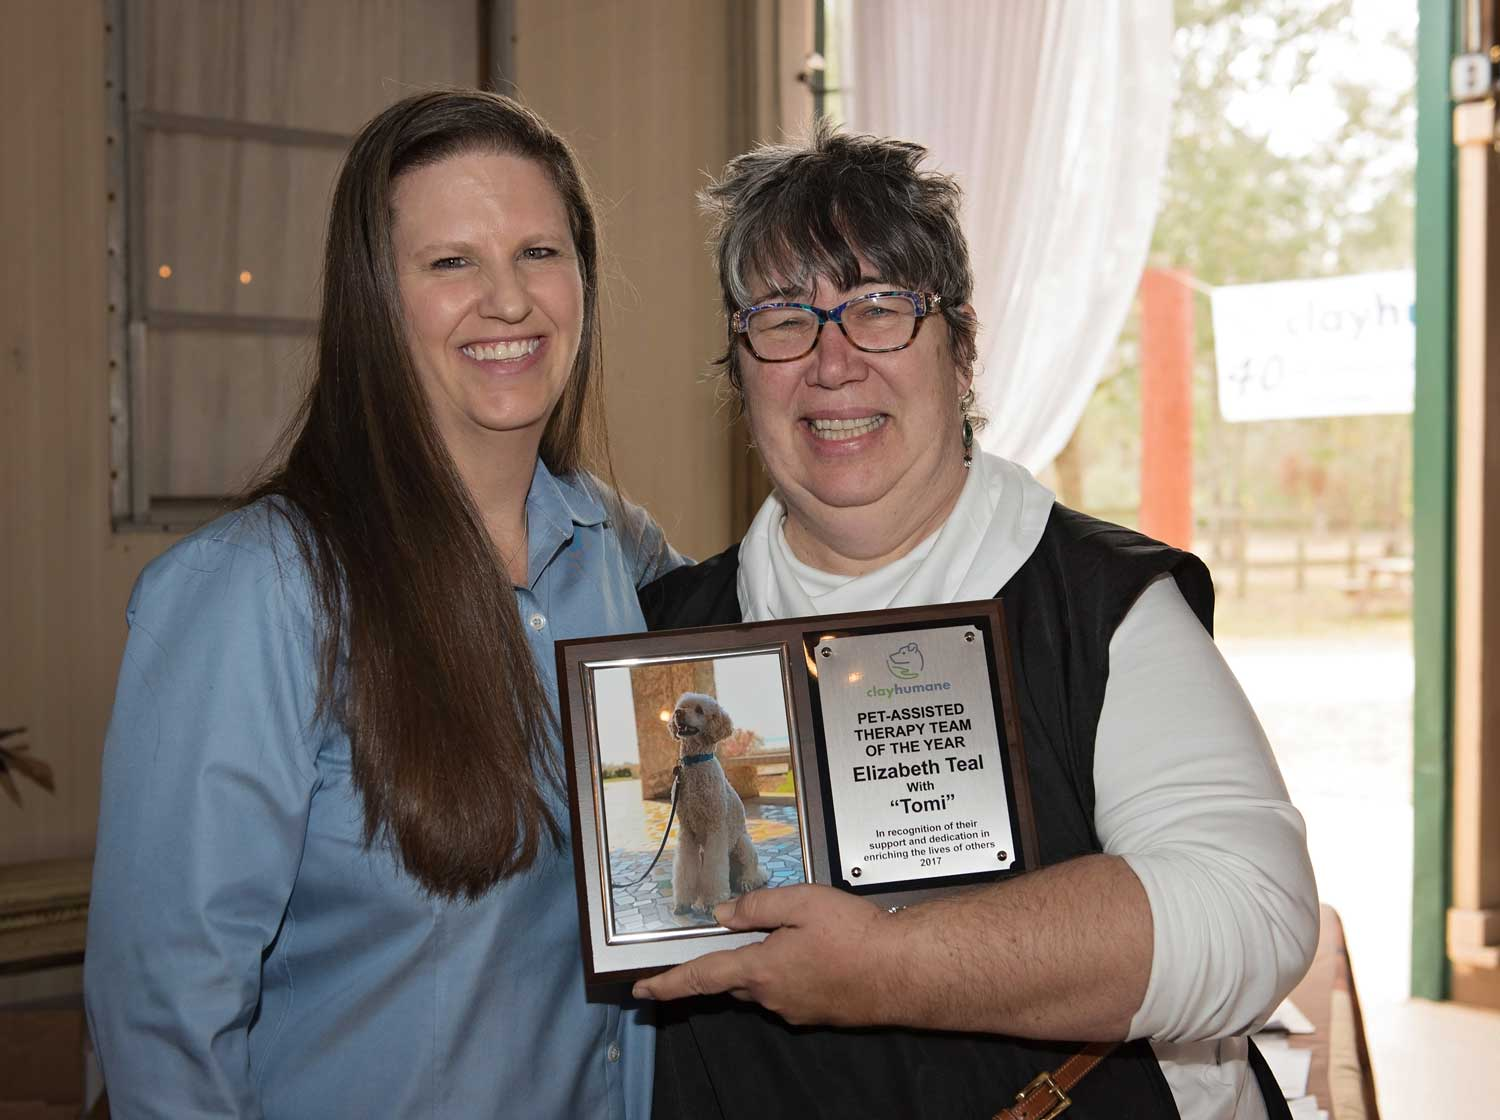 Elizabeth Teal accepts award from Lori Coleman of Clay Humane